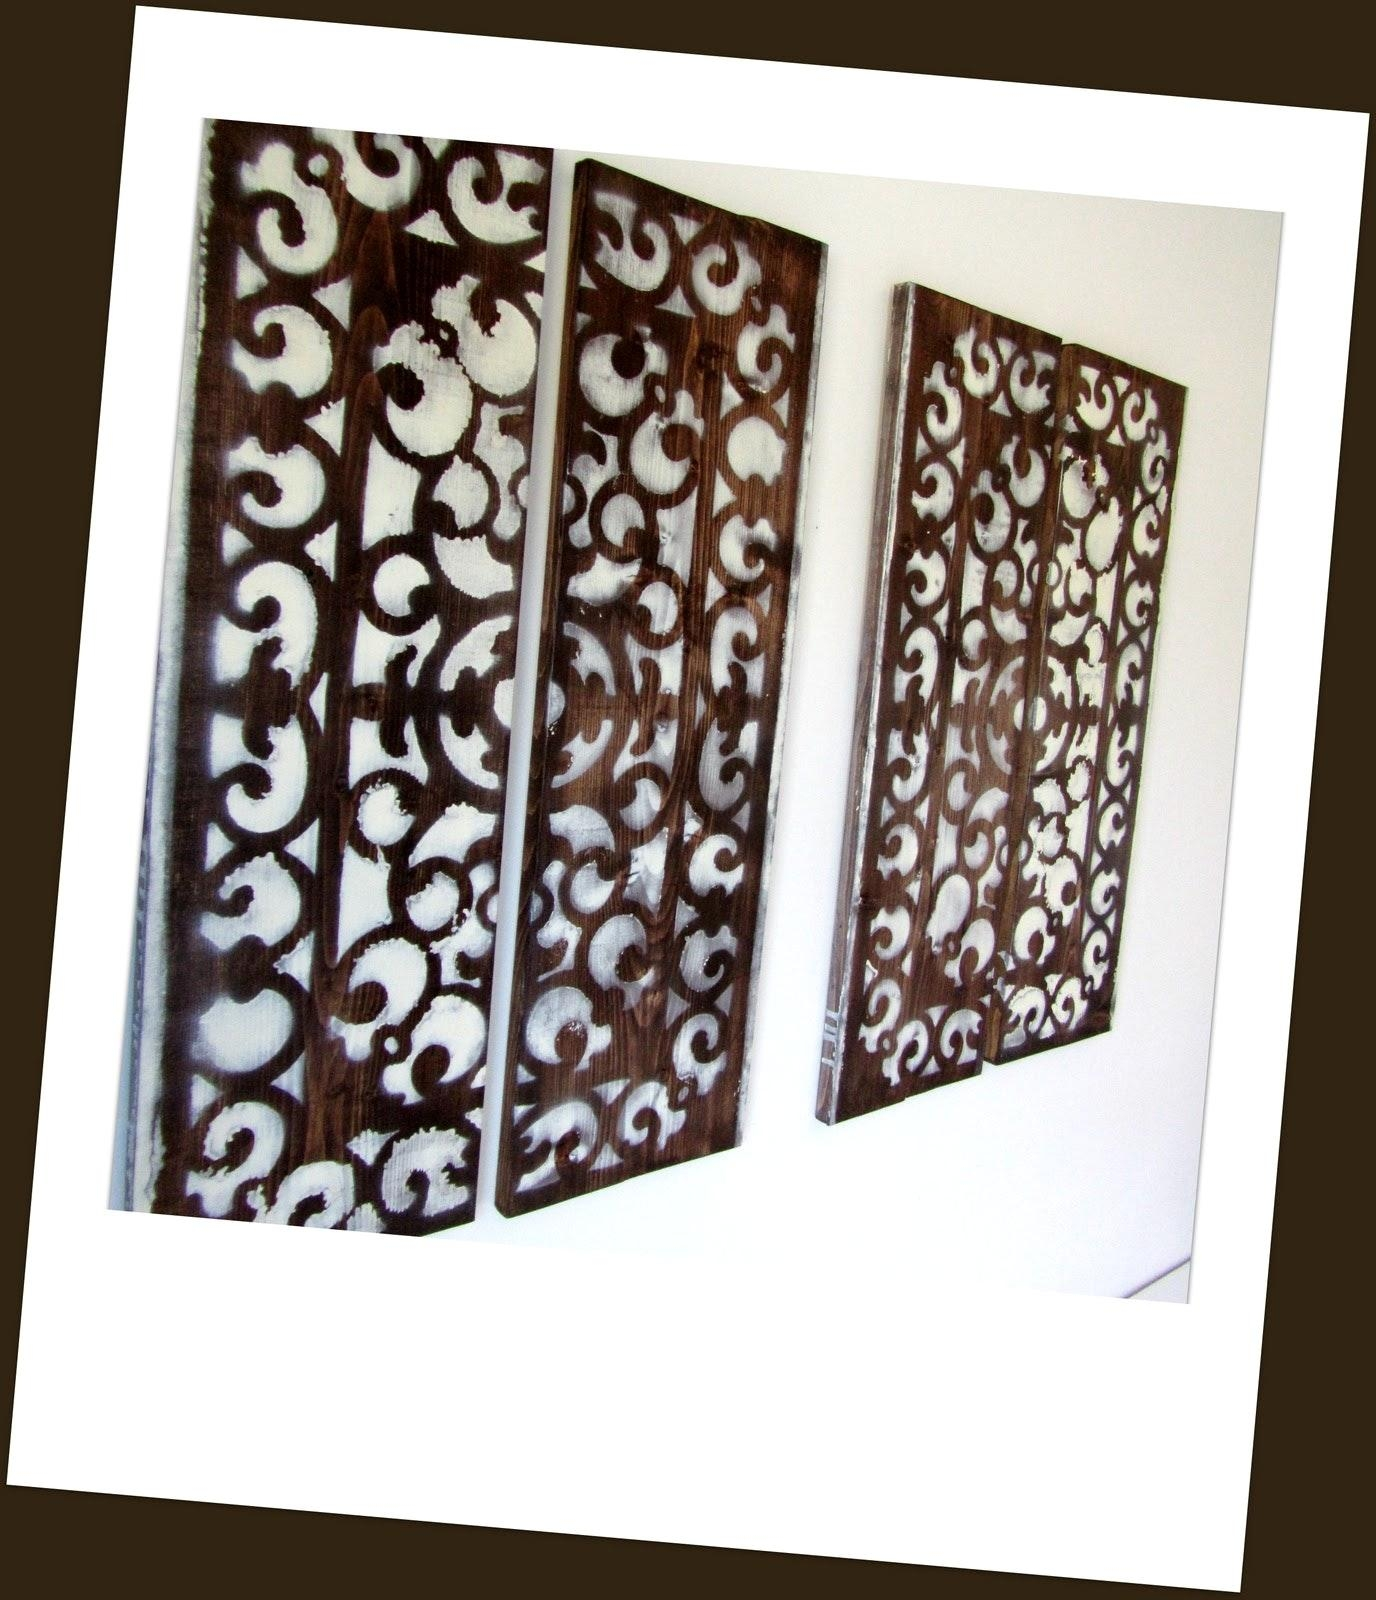 Endearing 90+ Wood Wall Art Panels Design Inspiration Of Ornate Throughout Wood Panel Wall Art (Image 5 of 20)